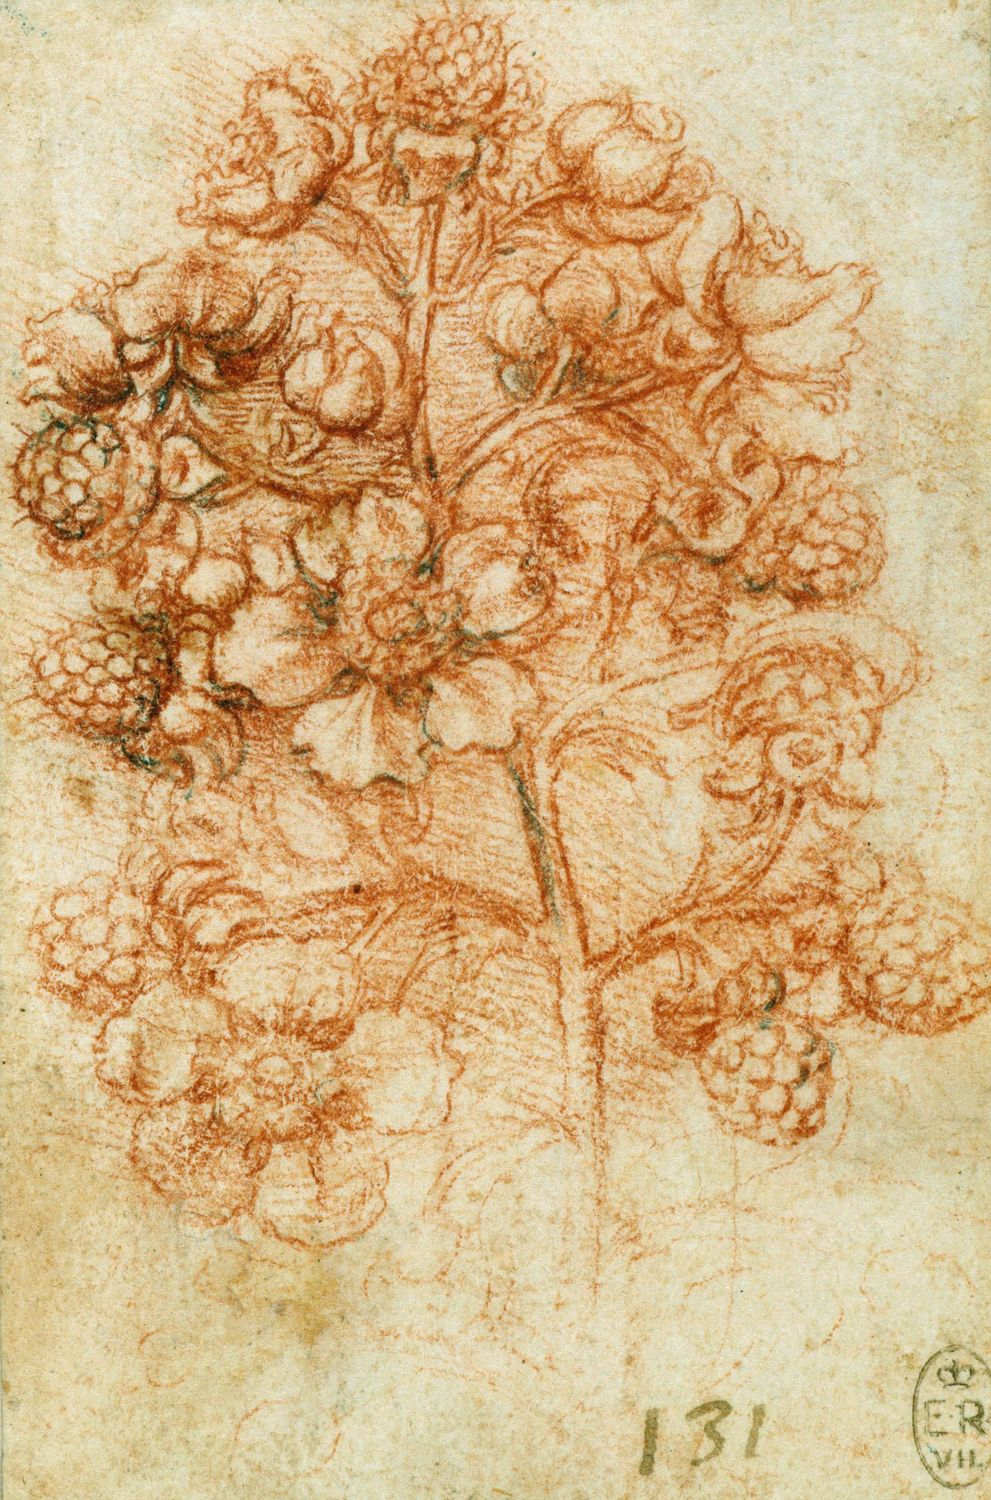 Leonardo da Vinci - Drawings - Plants - 11.jpg